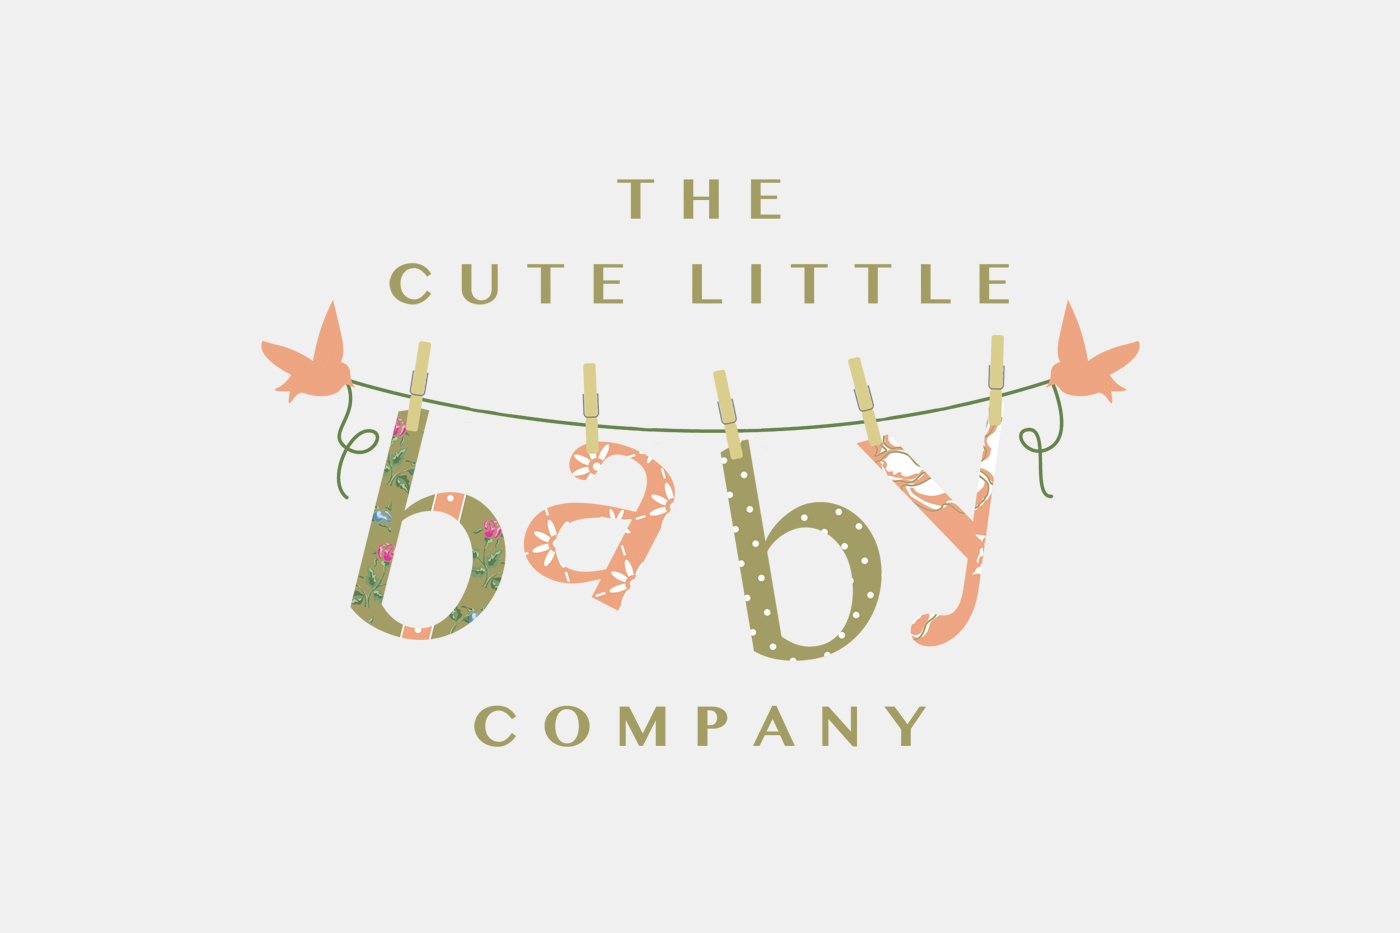 beb4c35be The Cute Little Baby Company - Eley Designs